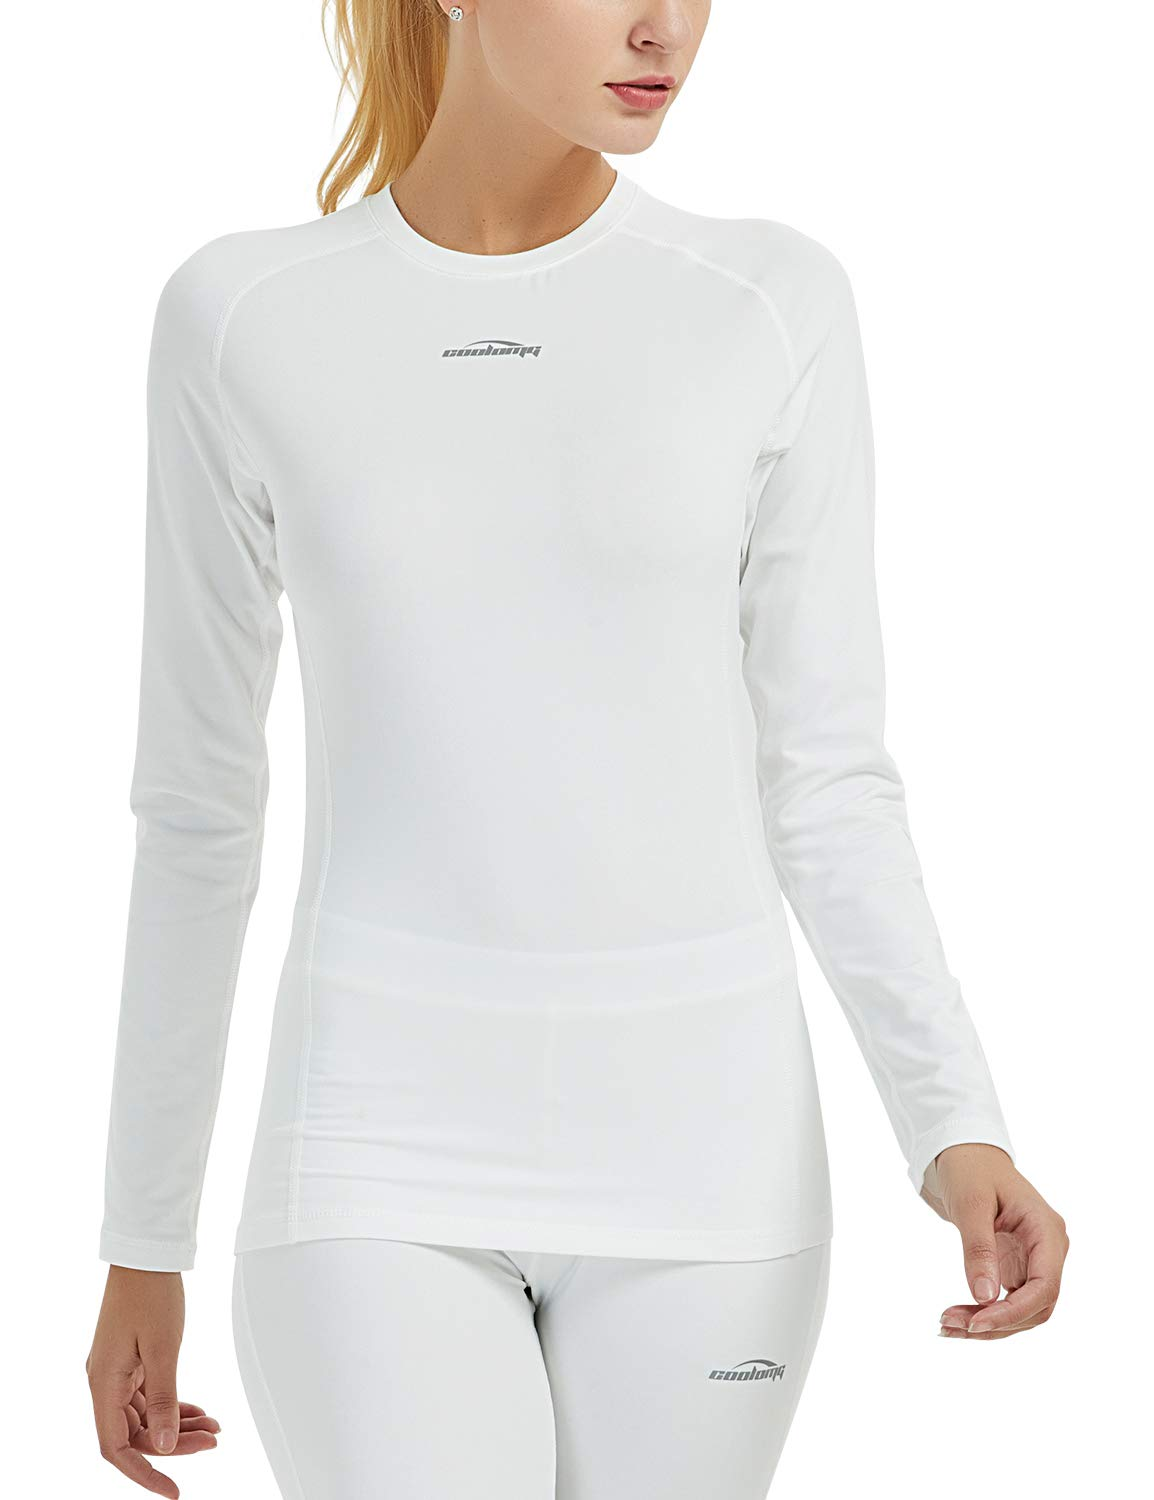 Women's Thermal Compression Shirt Baselayer Long Sleeve Fleece-Lined Winter Workout Yoga Running Tops